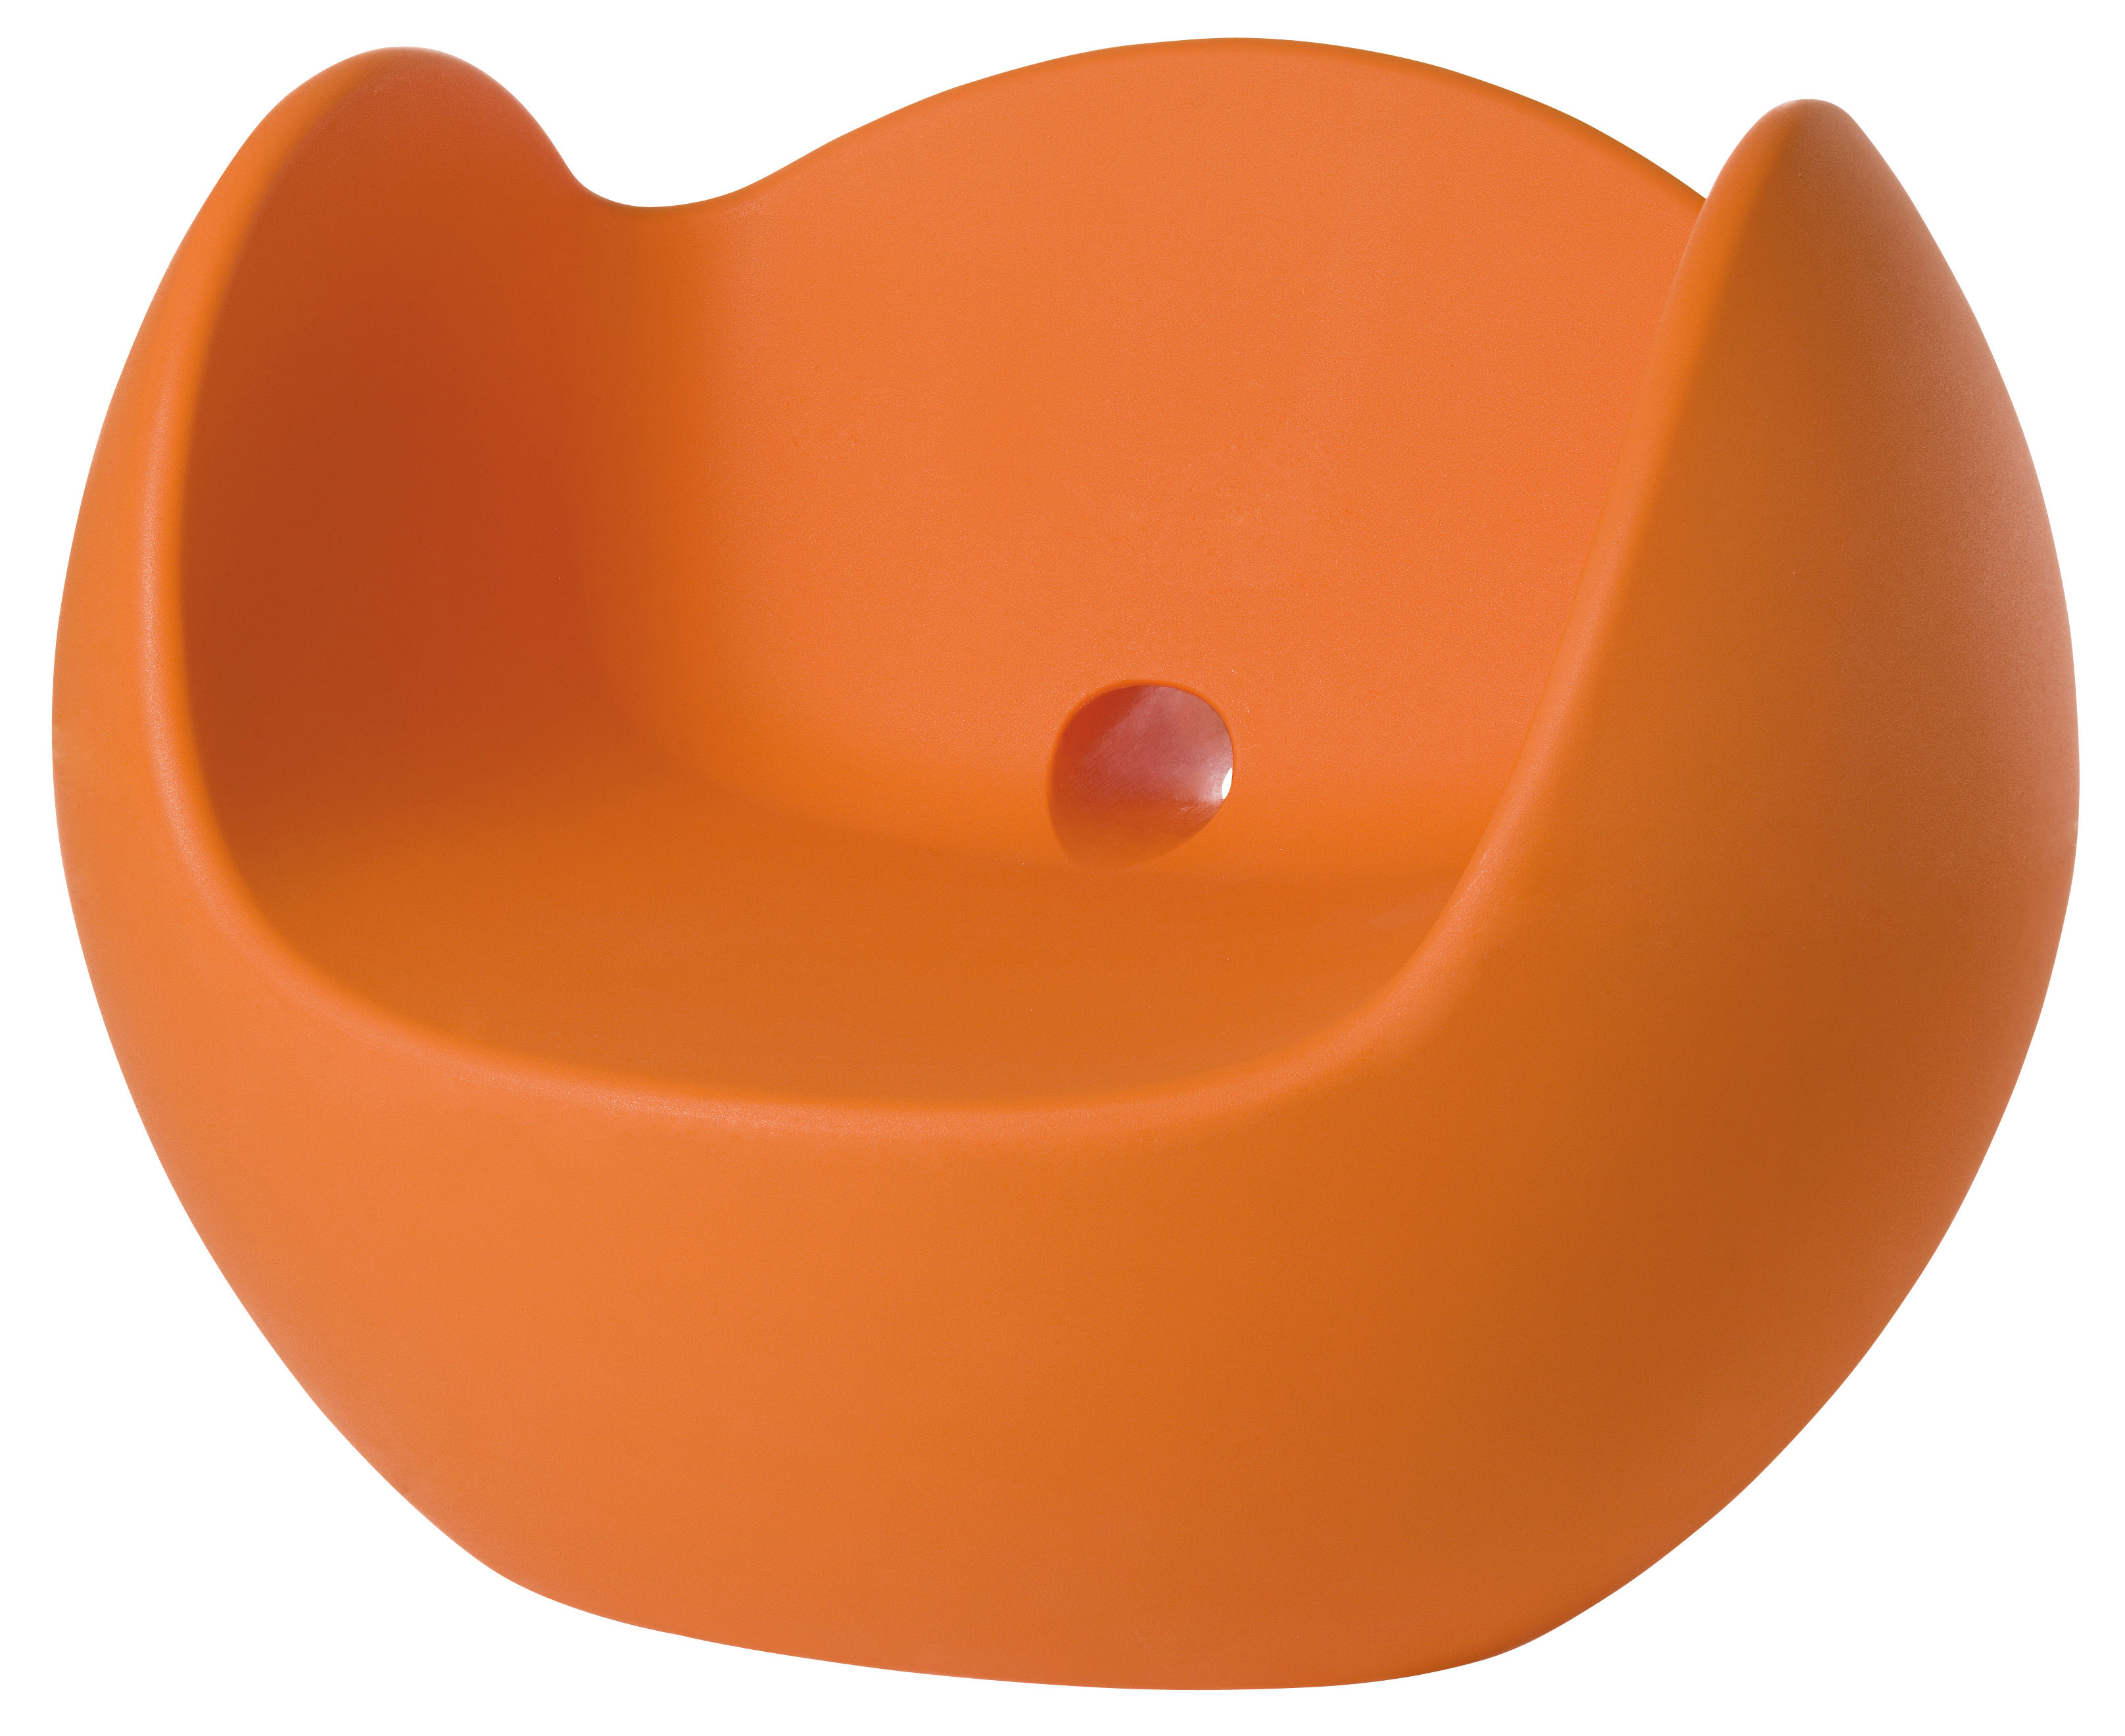 Mobilier - Mobilier Ados - Rocking chair Blos - Slide - Orange - Polyéthylène